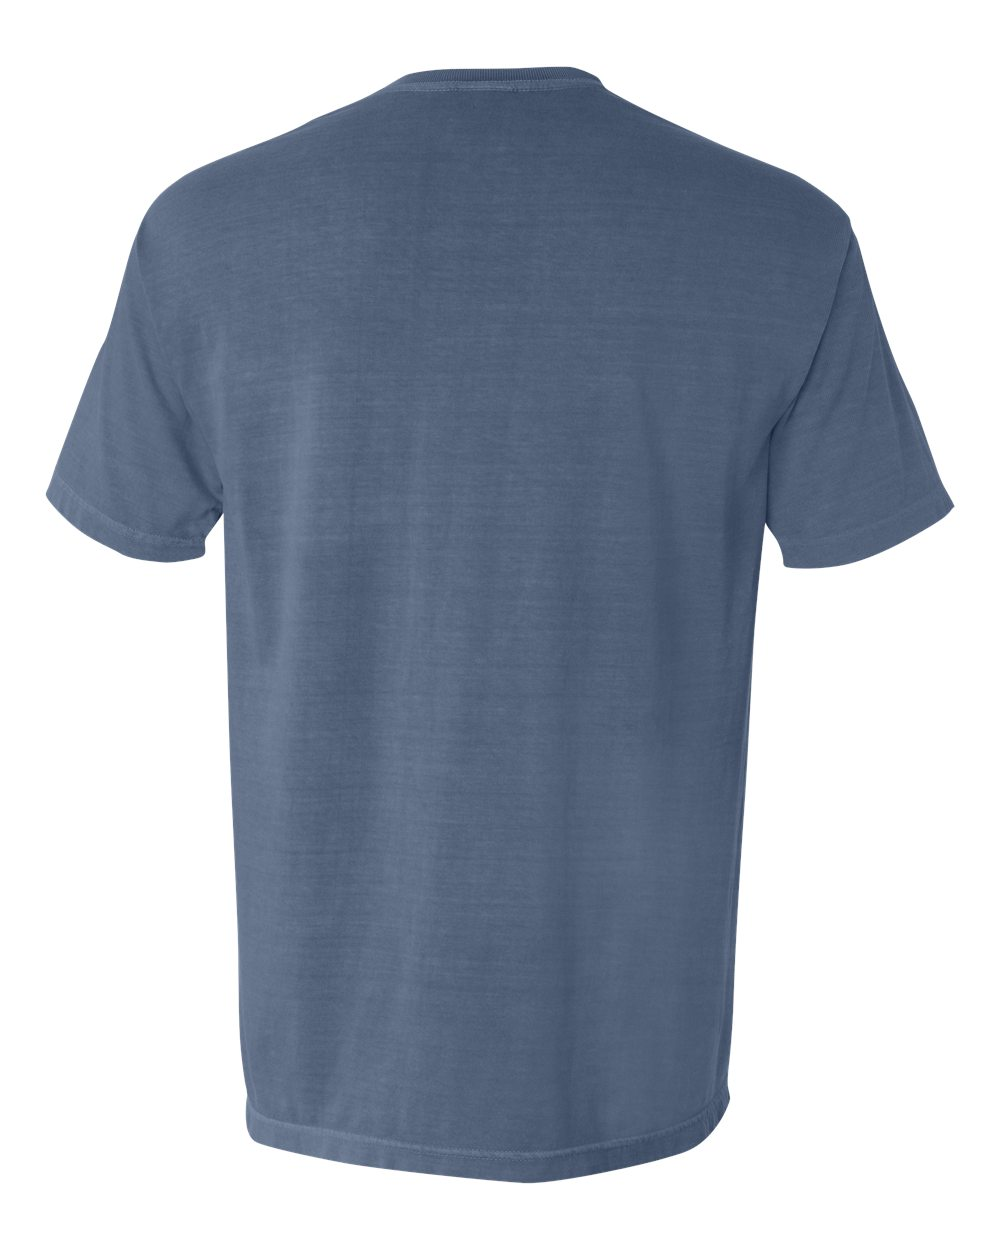 Comfort-Colors-Men-039-s-6-1-oz-Garment-Dyed-Pocket-T-Shirt-6030CC-S-3XL thumbnail 10